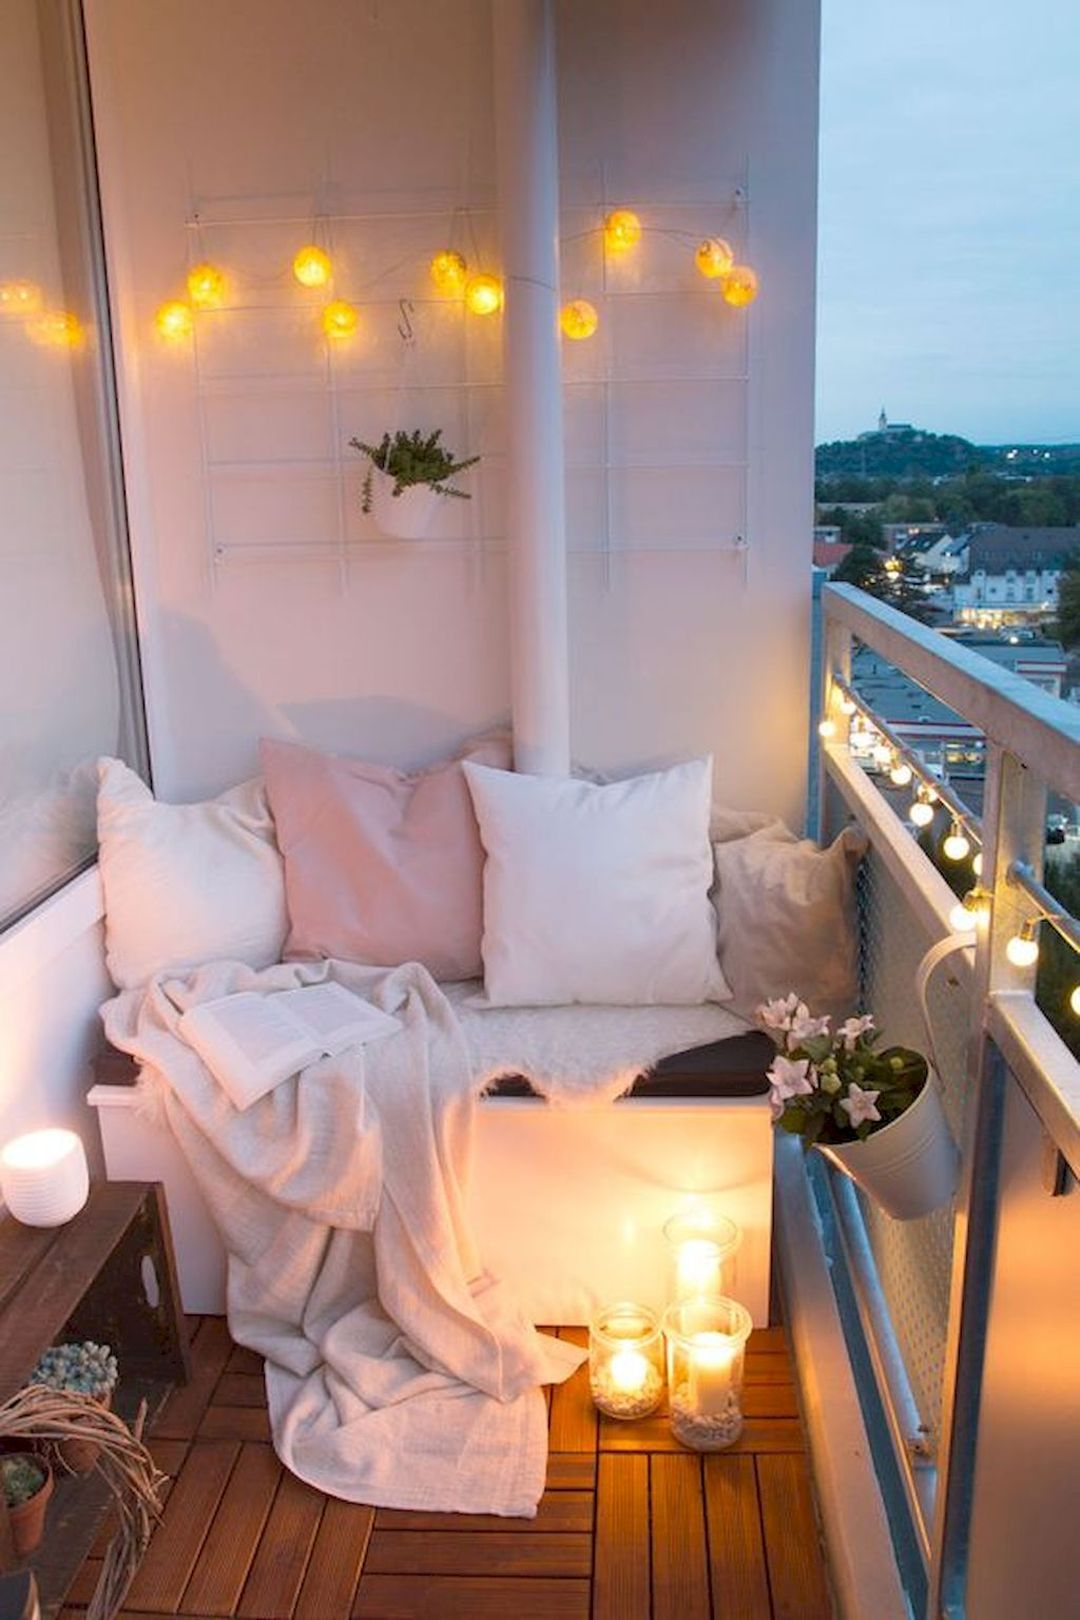 DIY Small Apartment Decorating Ideas On A Budget (26 Nyc